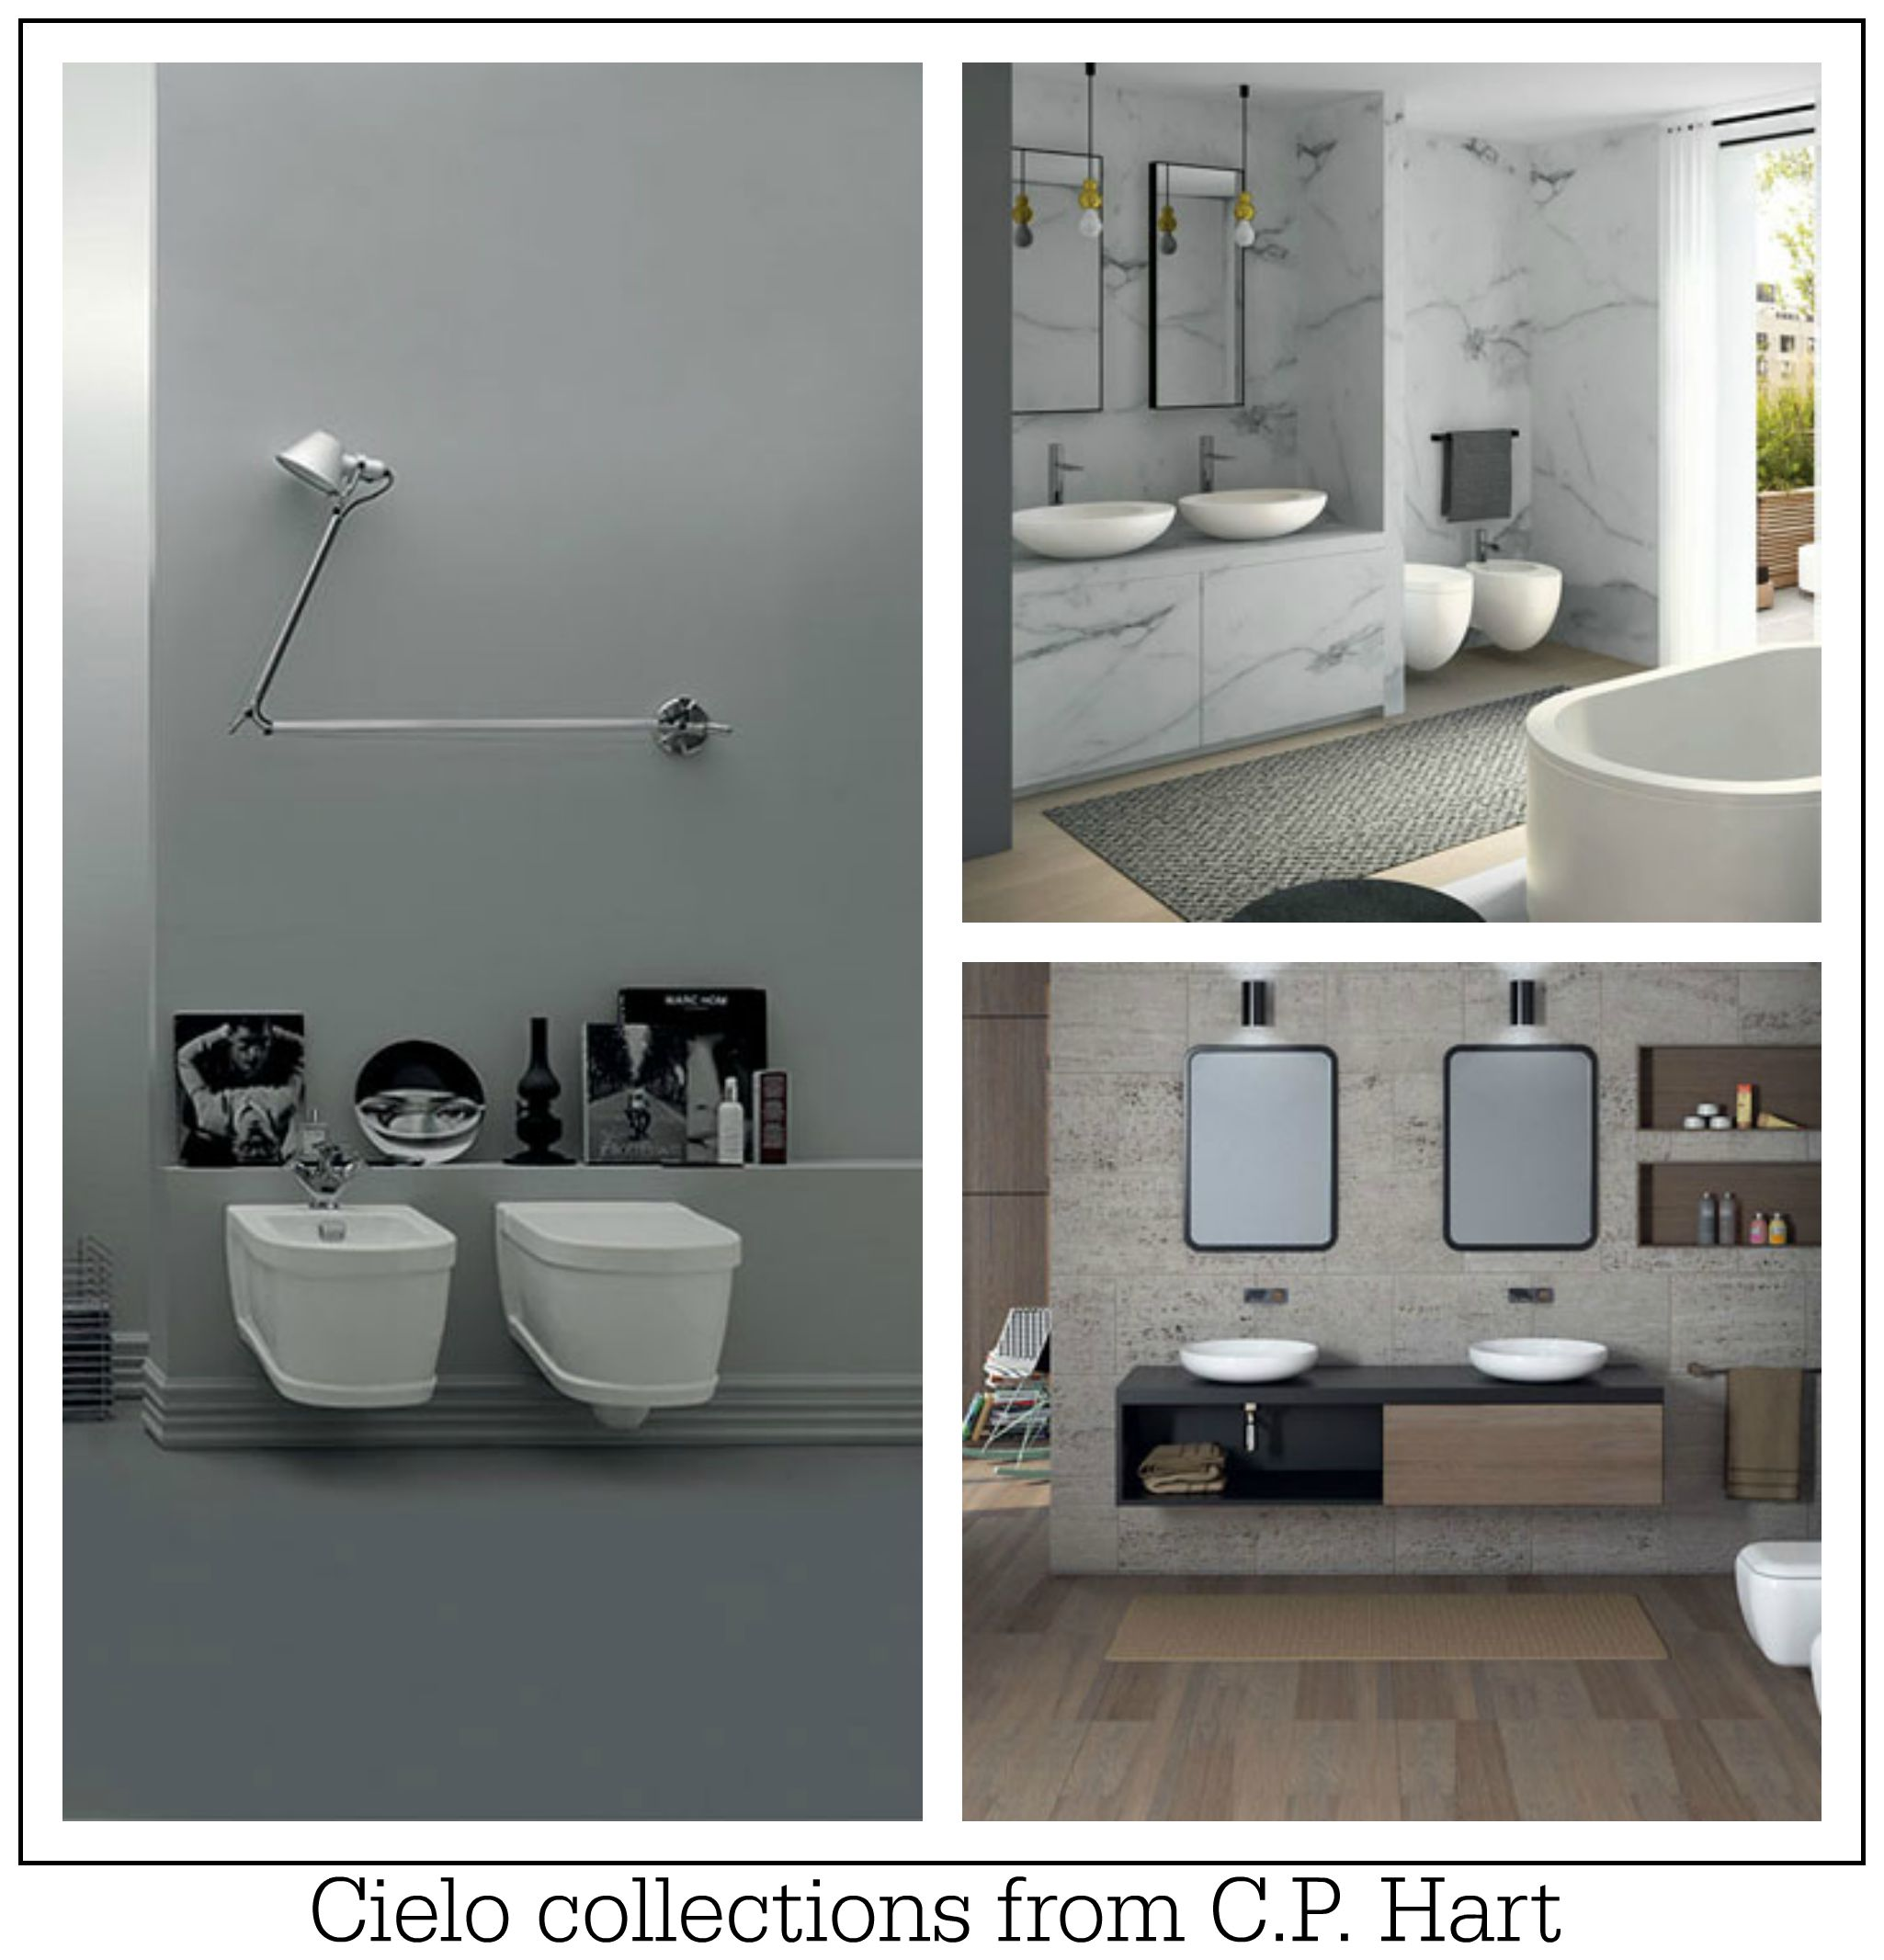 New Bathroom Designs: Stunning New Bathroom Collections From C.P. Hart